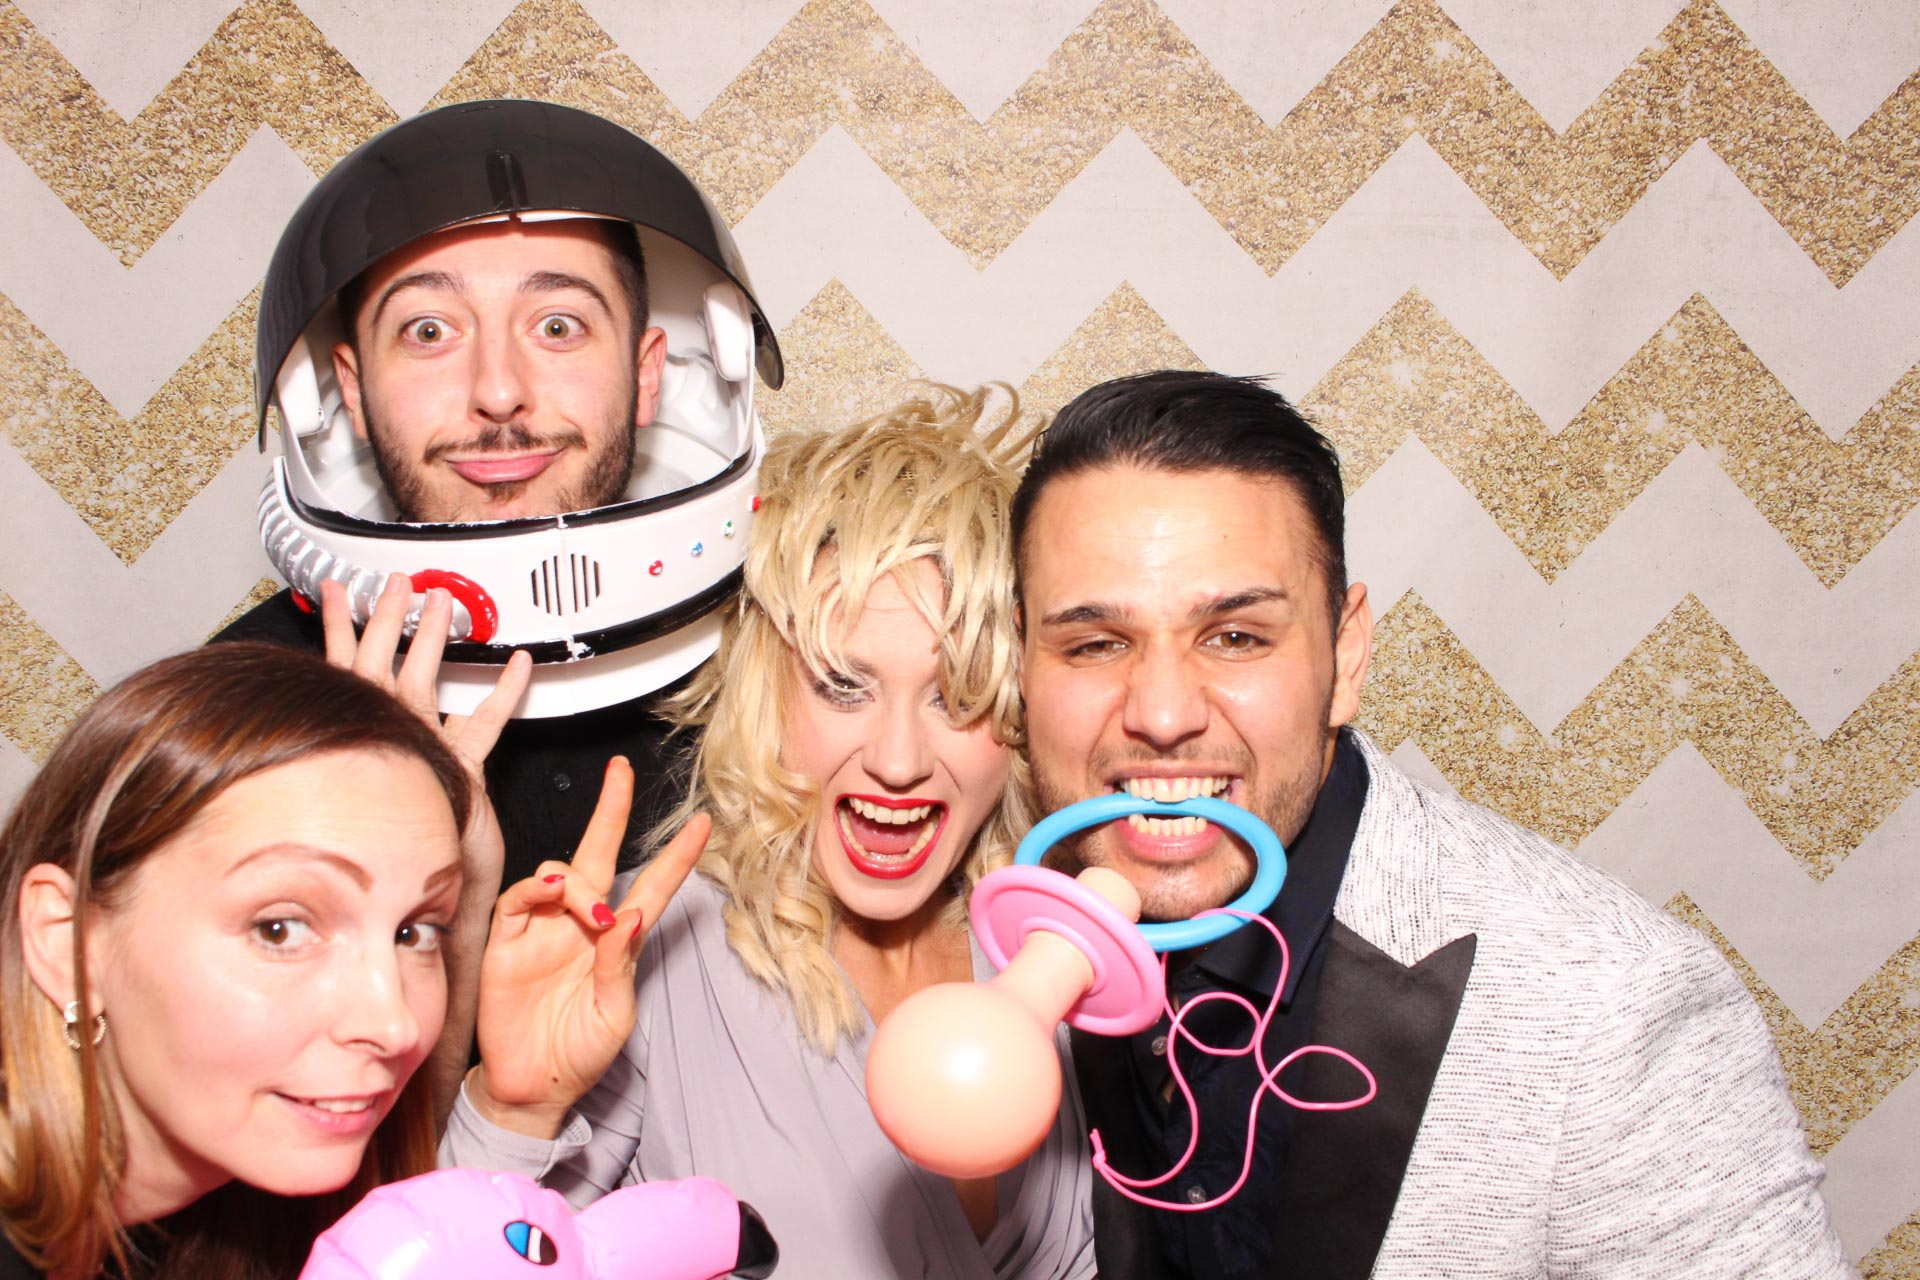 fotoauto photo booth hire-22.jpg